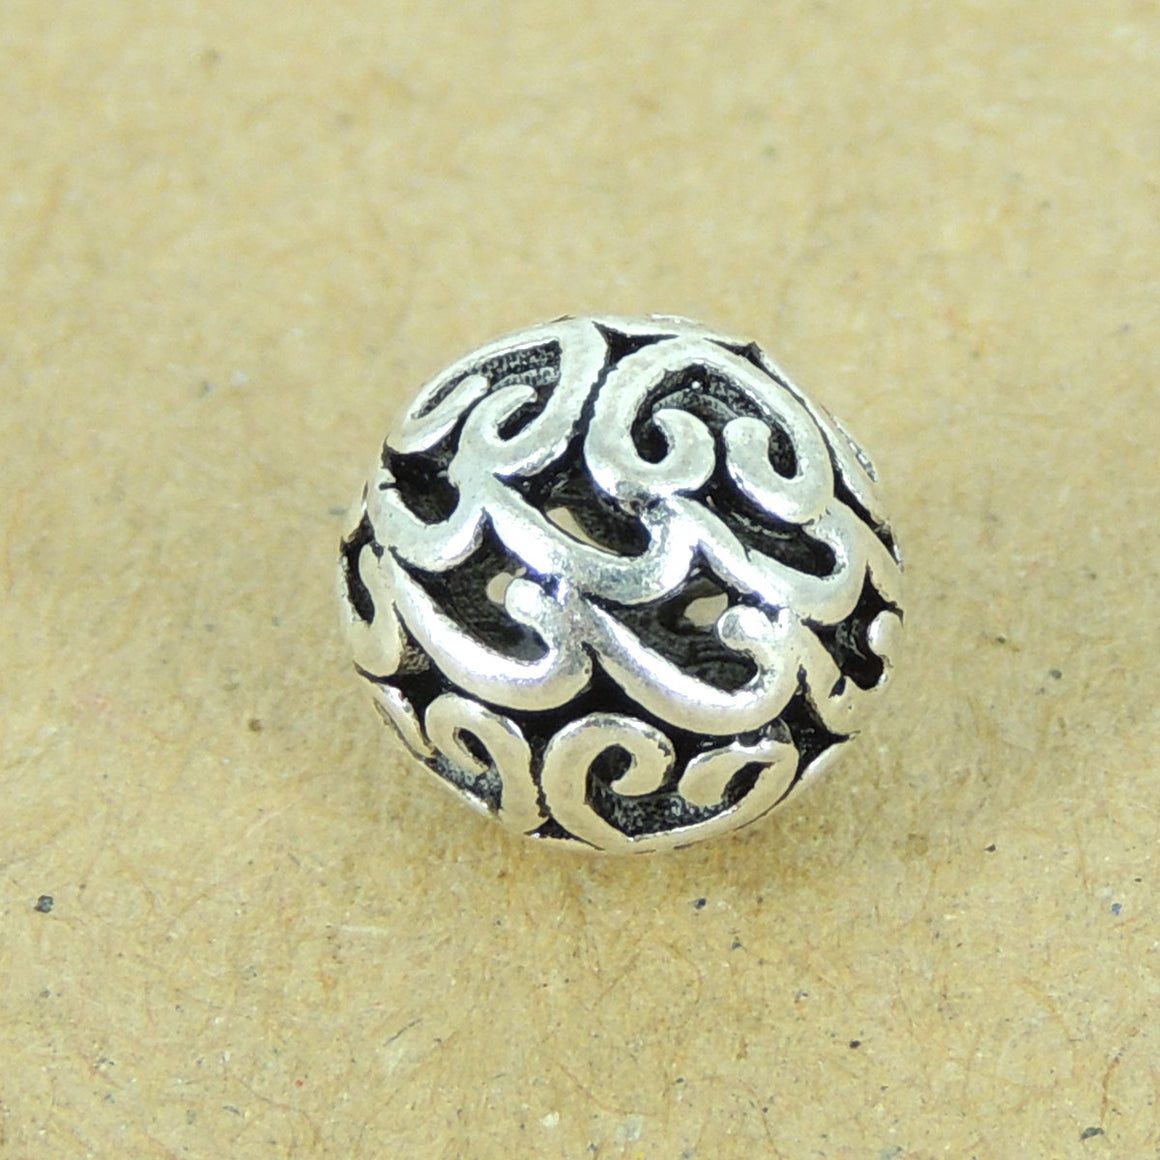 2 PCS Heart Pattern Artisan Beads - S925 Sterling Silver WSP312X2